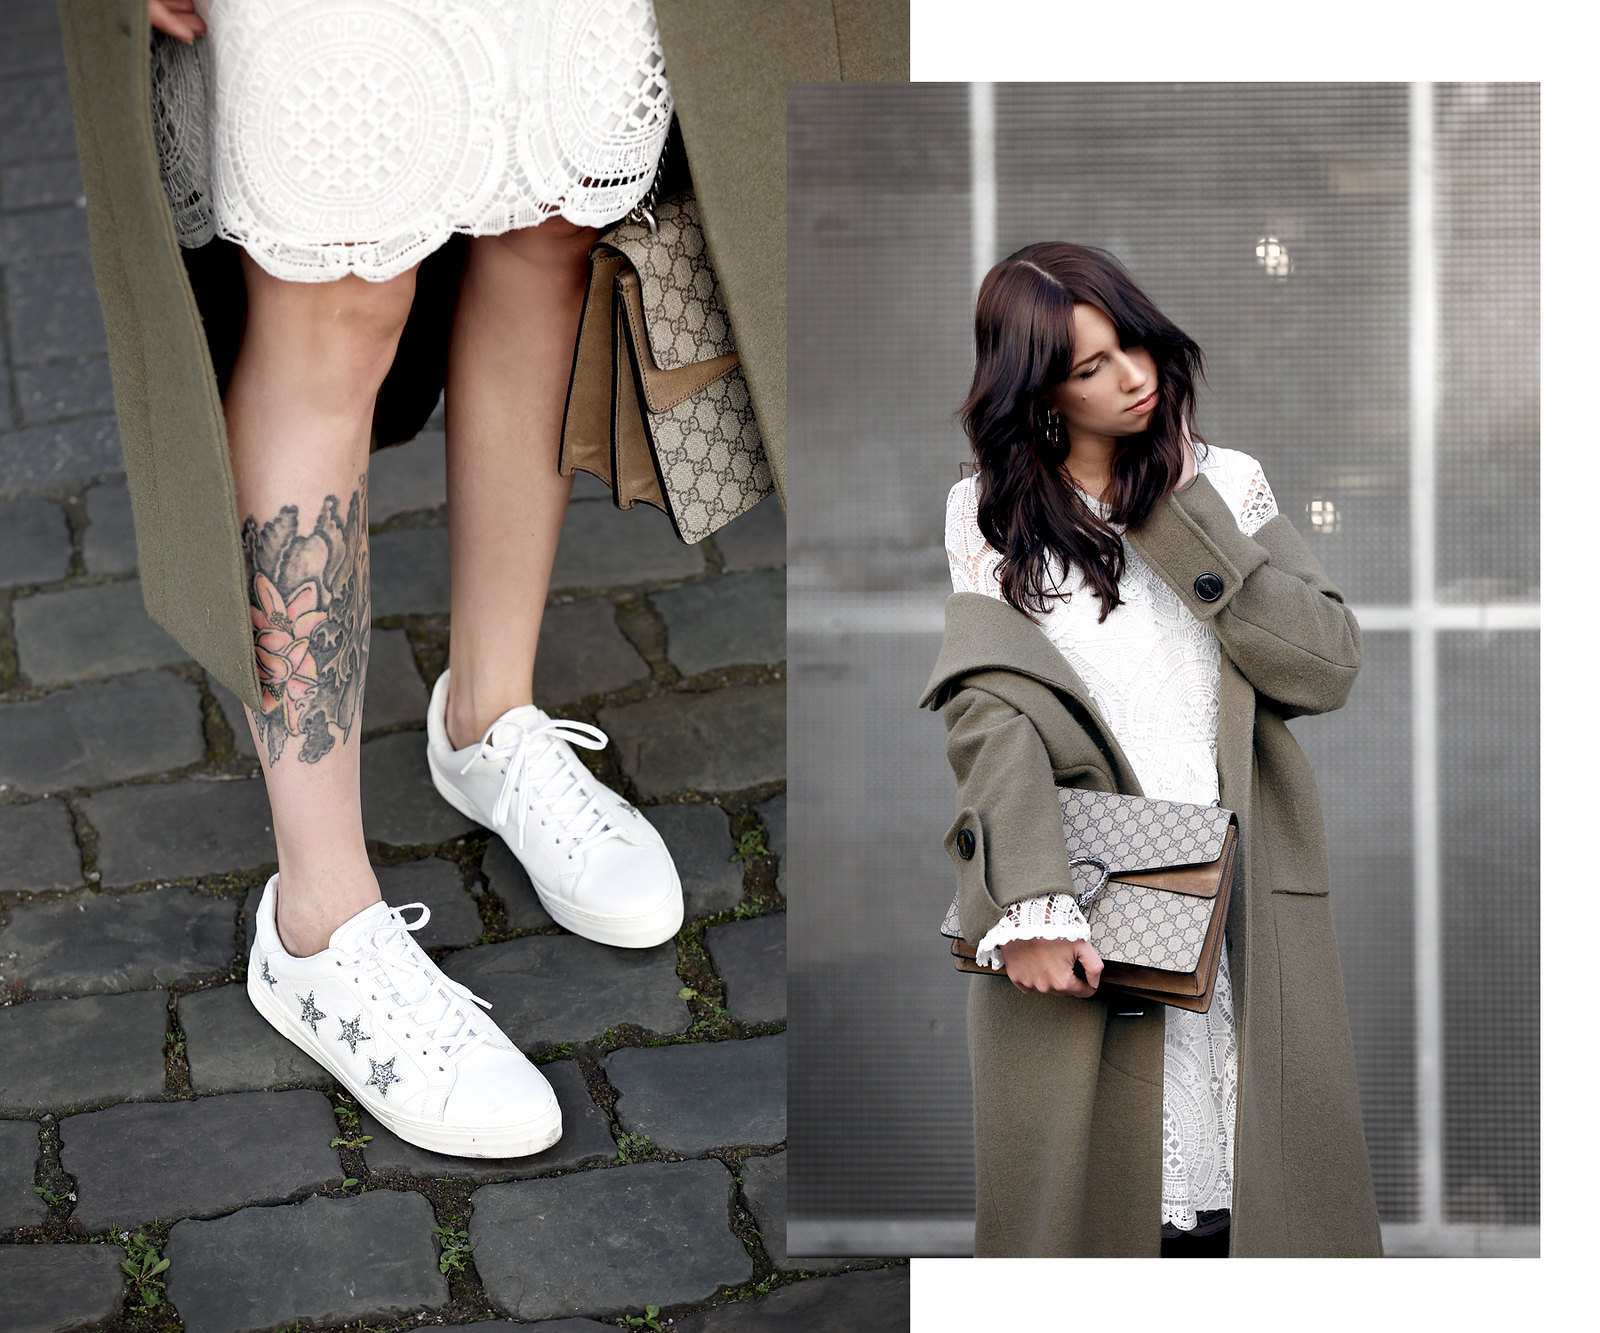 about you coat khaki wool white lace dress vila sneakers sacha gucci dionysus bag mvmt watch gold ootd styling lookbook cats & dogs modeblog ricarda schernus fashionblogger berlin düsseldorf 1